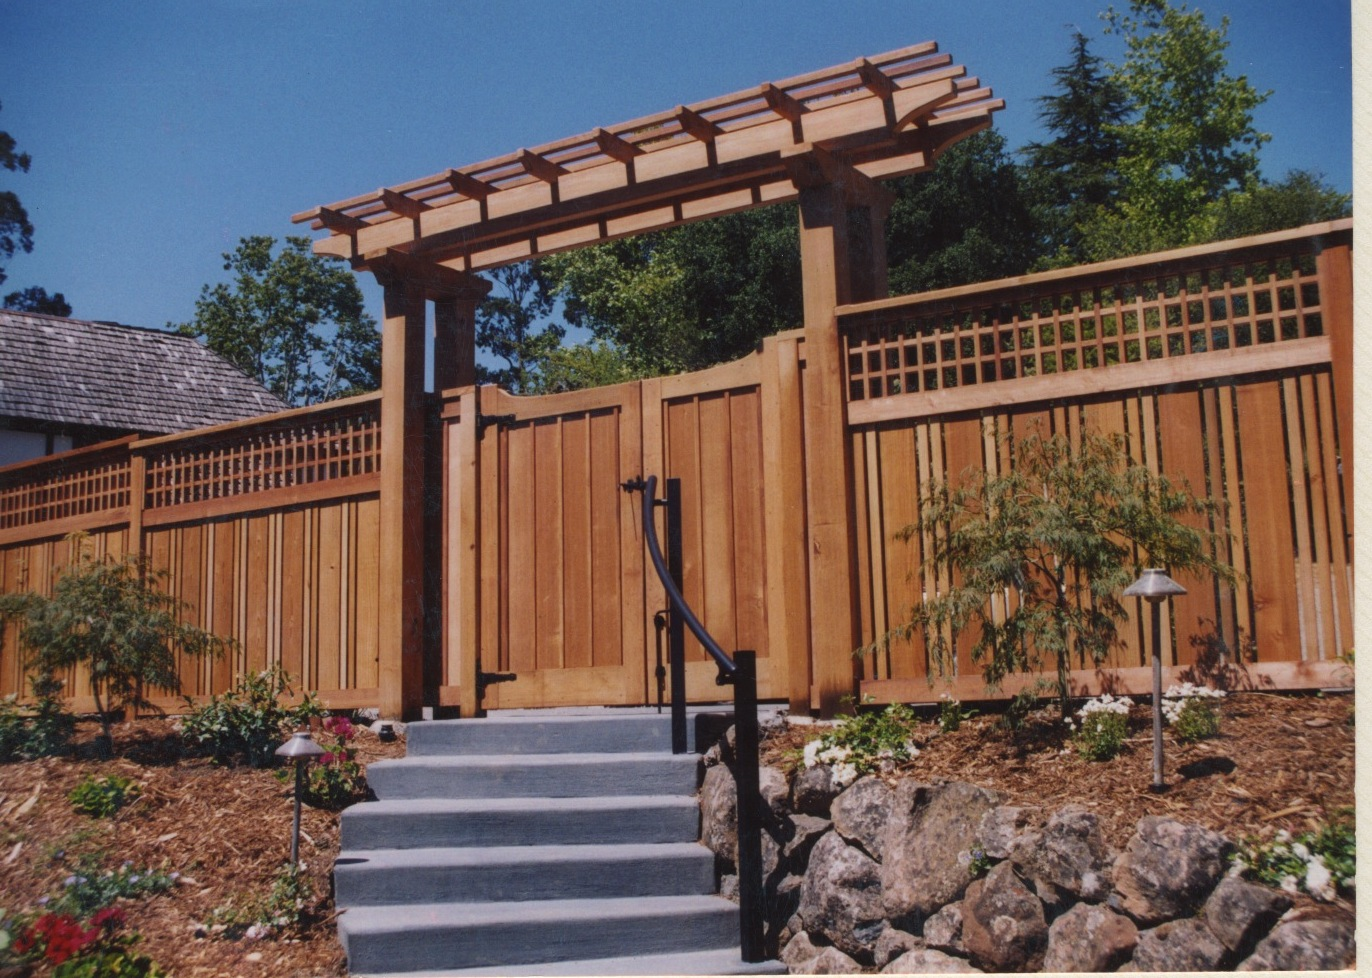 Macgregor construction japanese style entry gate for Japanese gates pictures